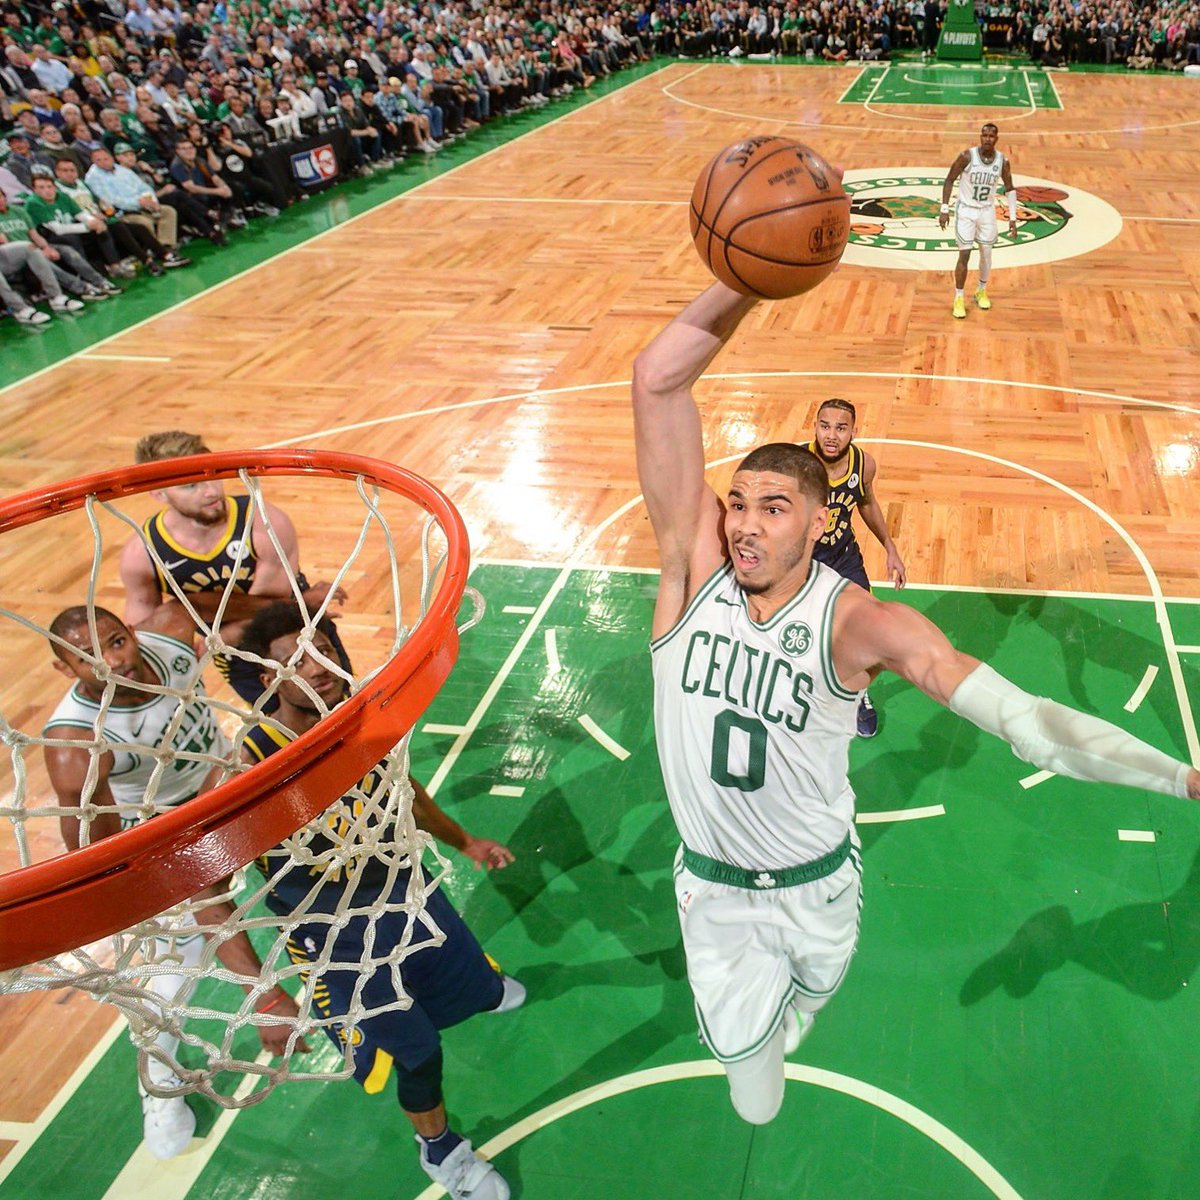 Tatum se dispone a anotar.